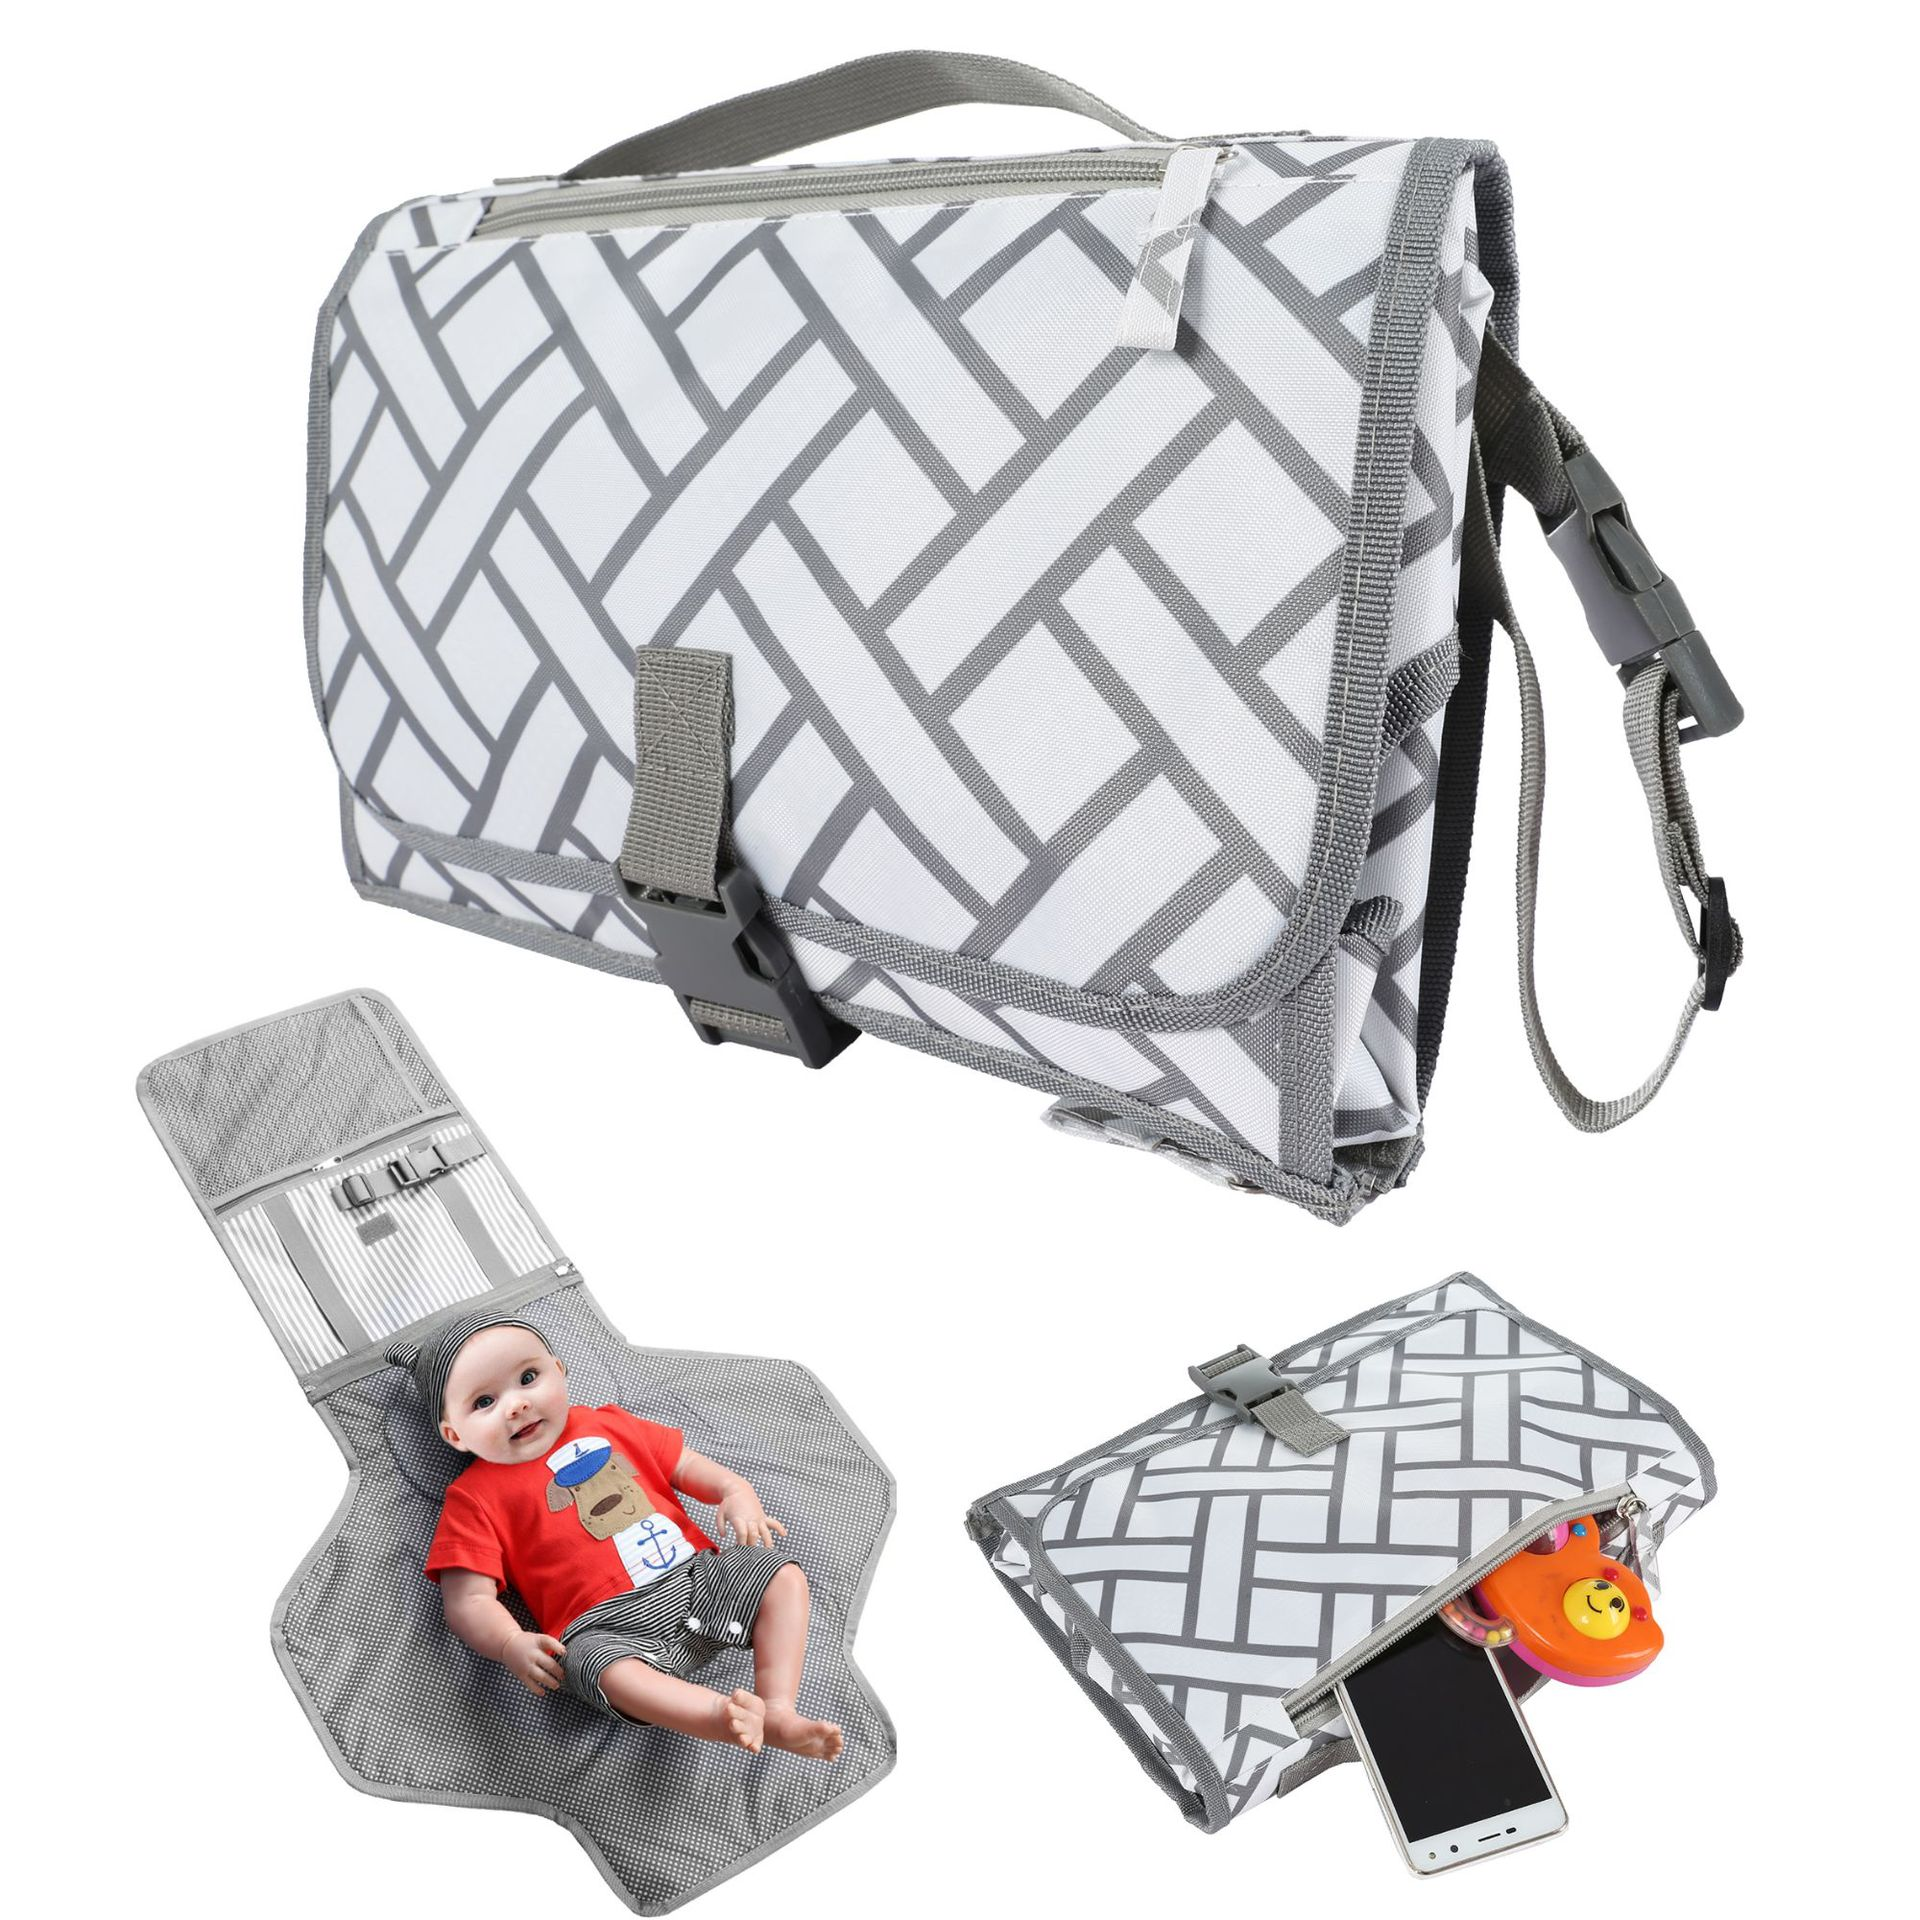 Nappy Changing Mat  For Outside Storage Bag Baby Floor Mat Home Travel  Portable Foldable Waterproof  Diaper Baby Changing Kit